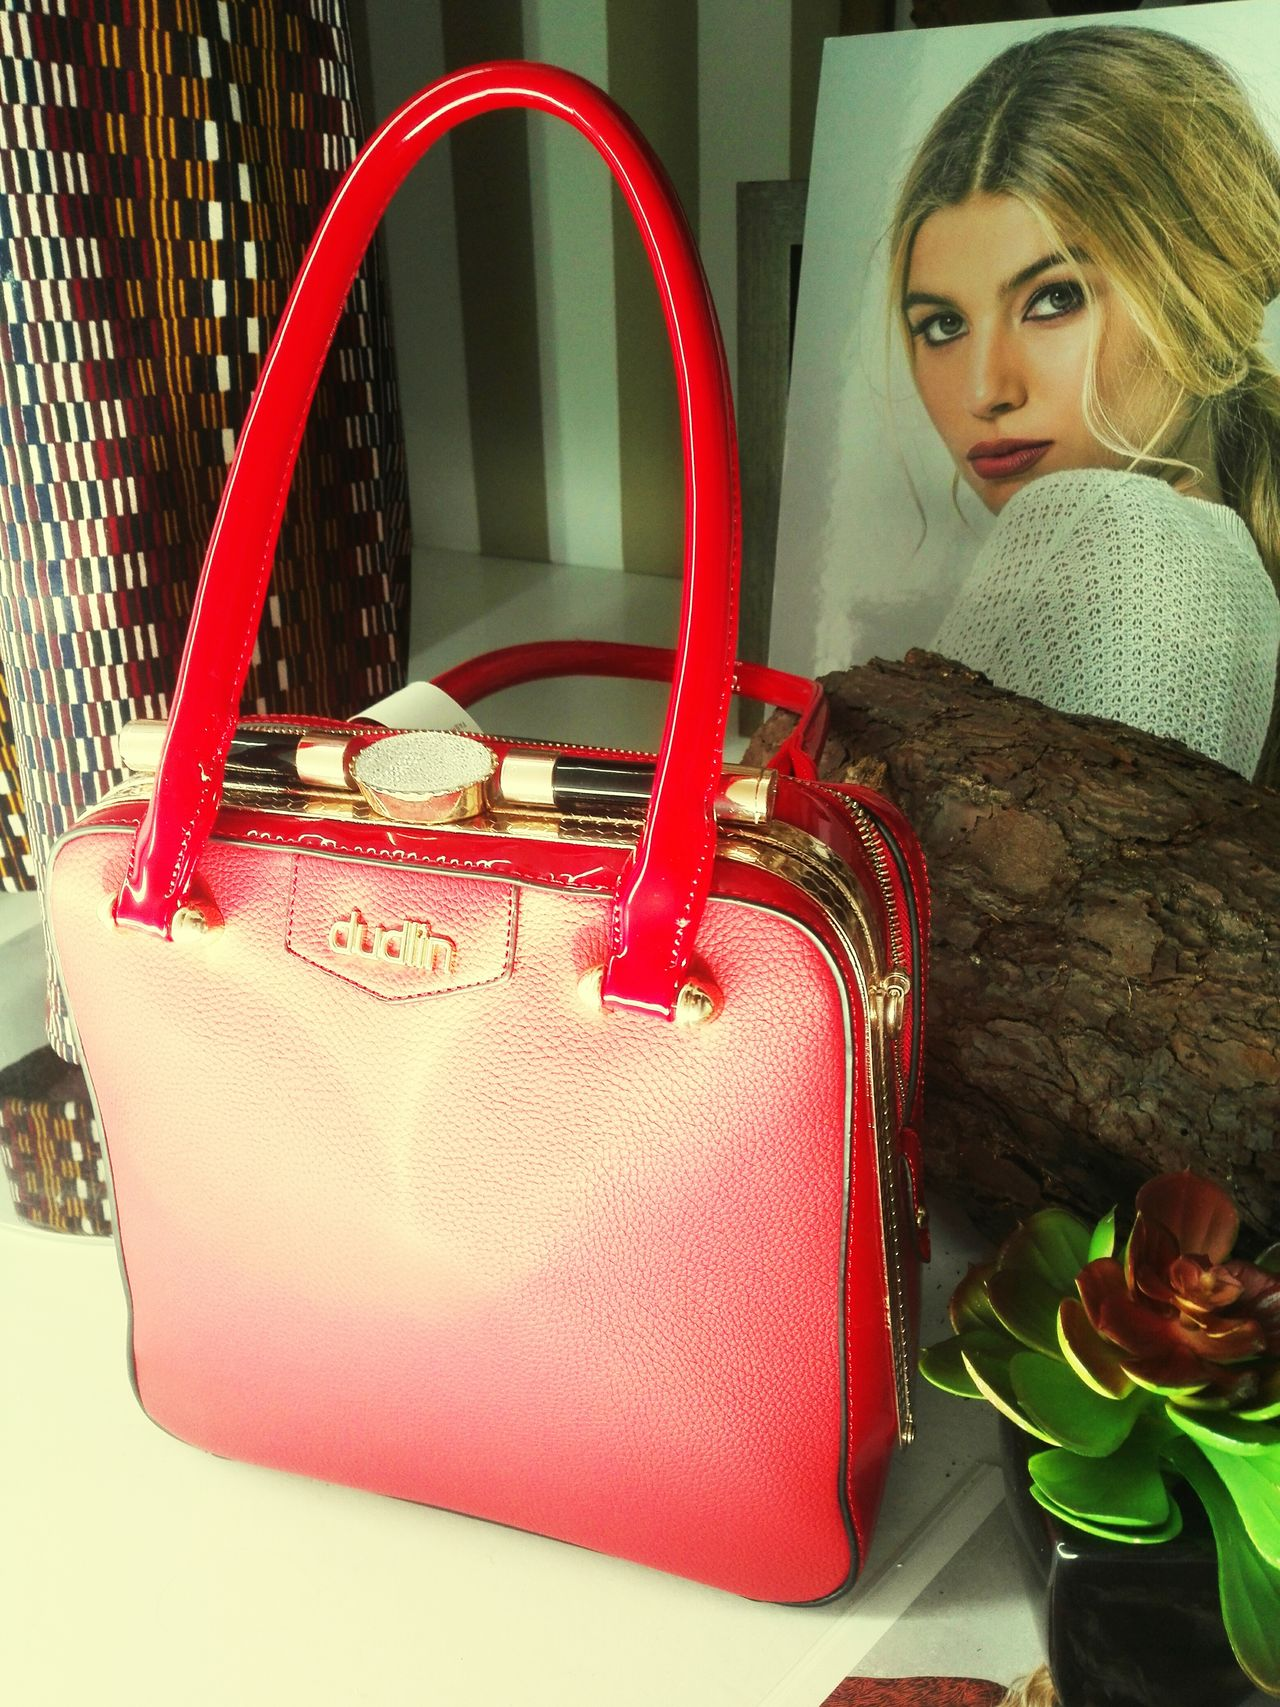 Irresistable Red Female Fashion Lovelovelove Bagscollections